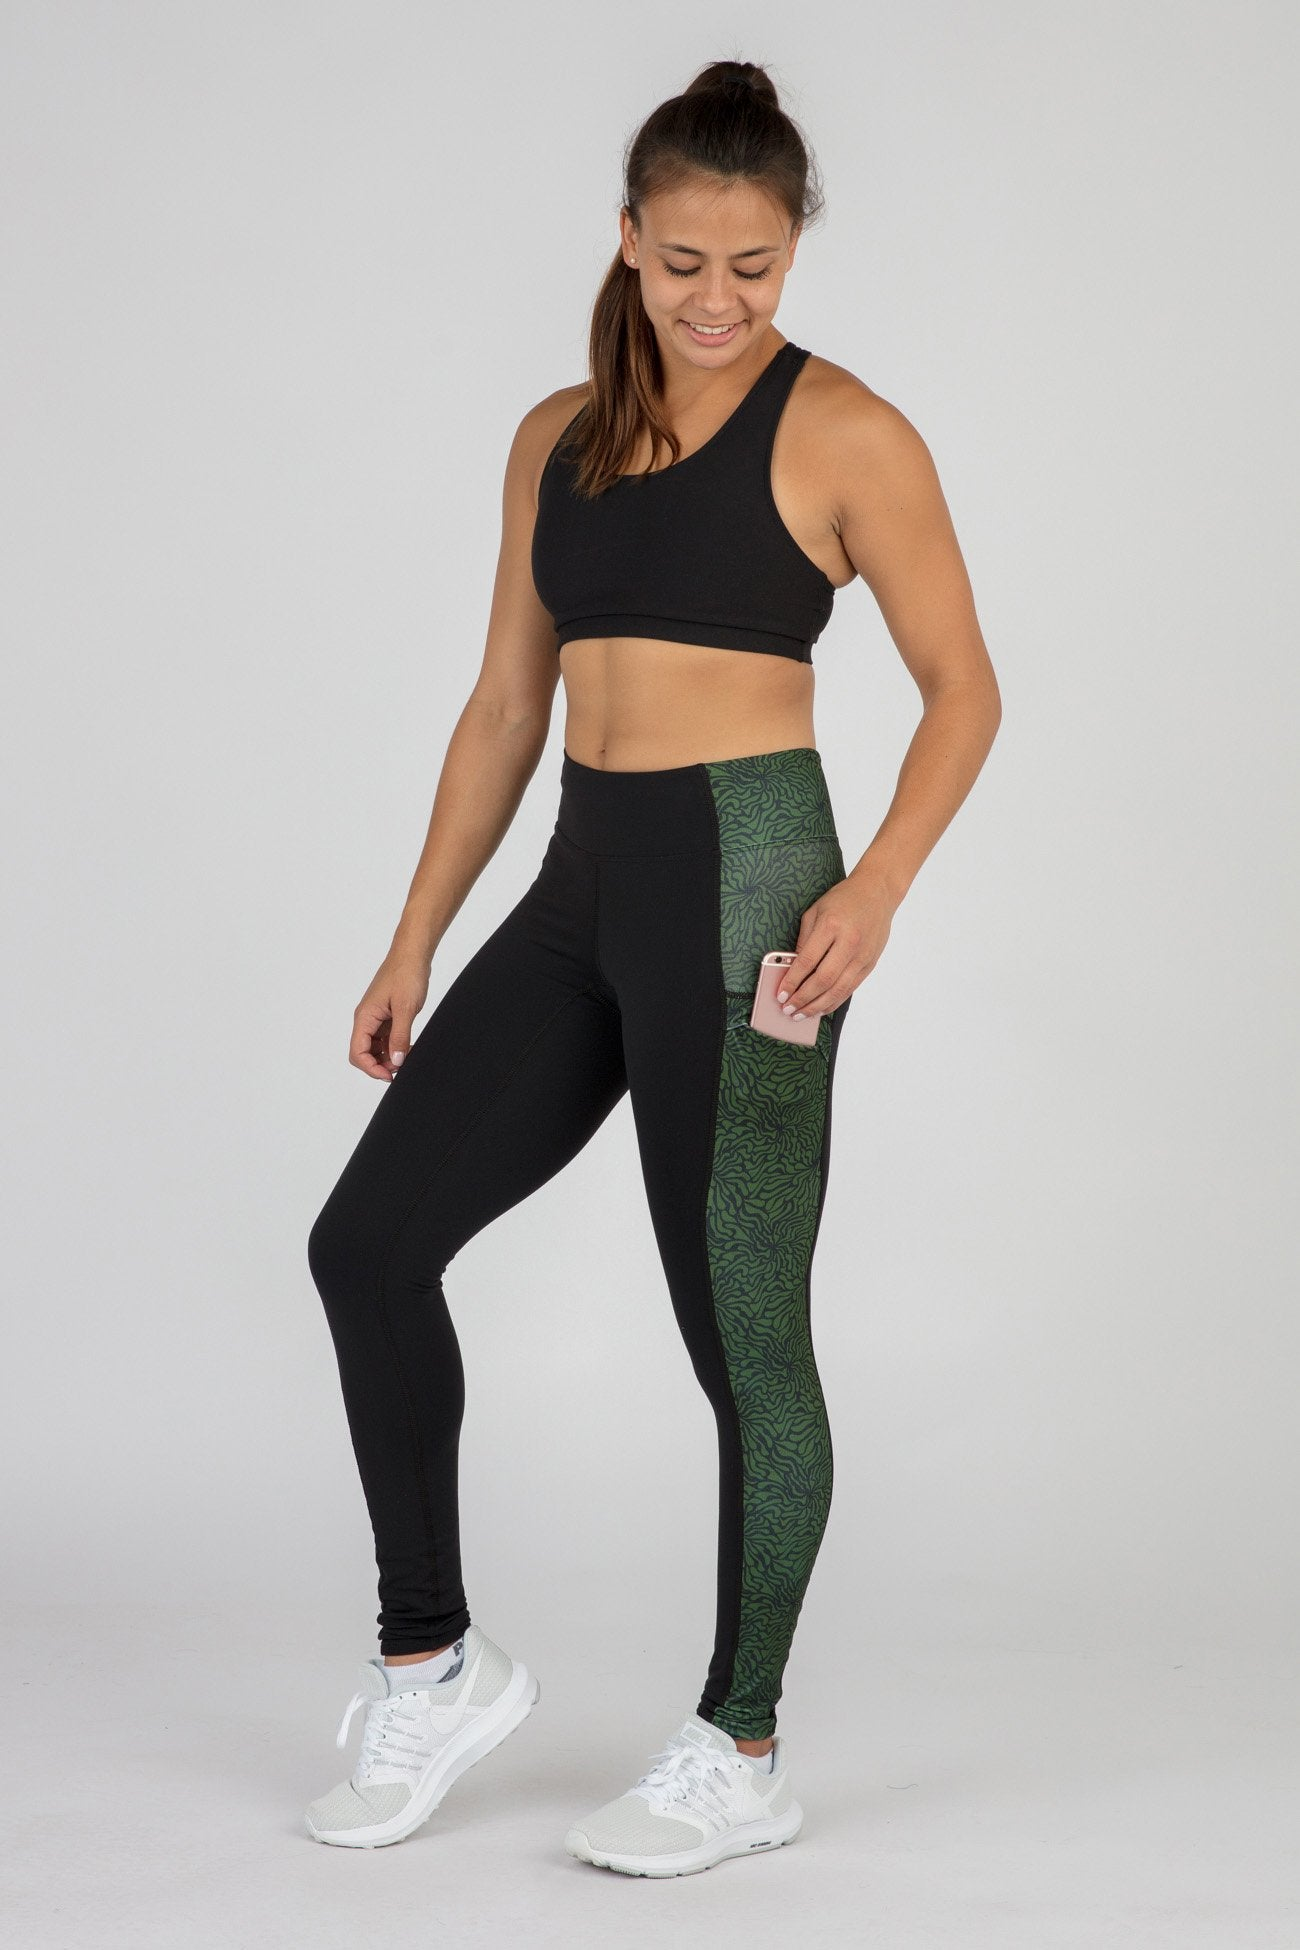 WOMEN S POWER X CONNECT RUNNING TIGHTS- ABYSS PESTO – BOA  7d15e0f99d764